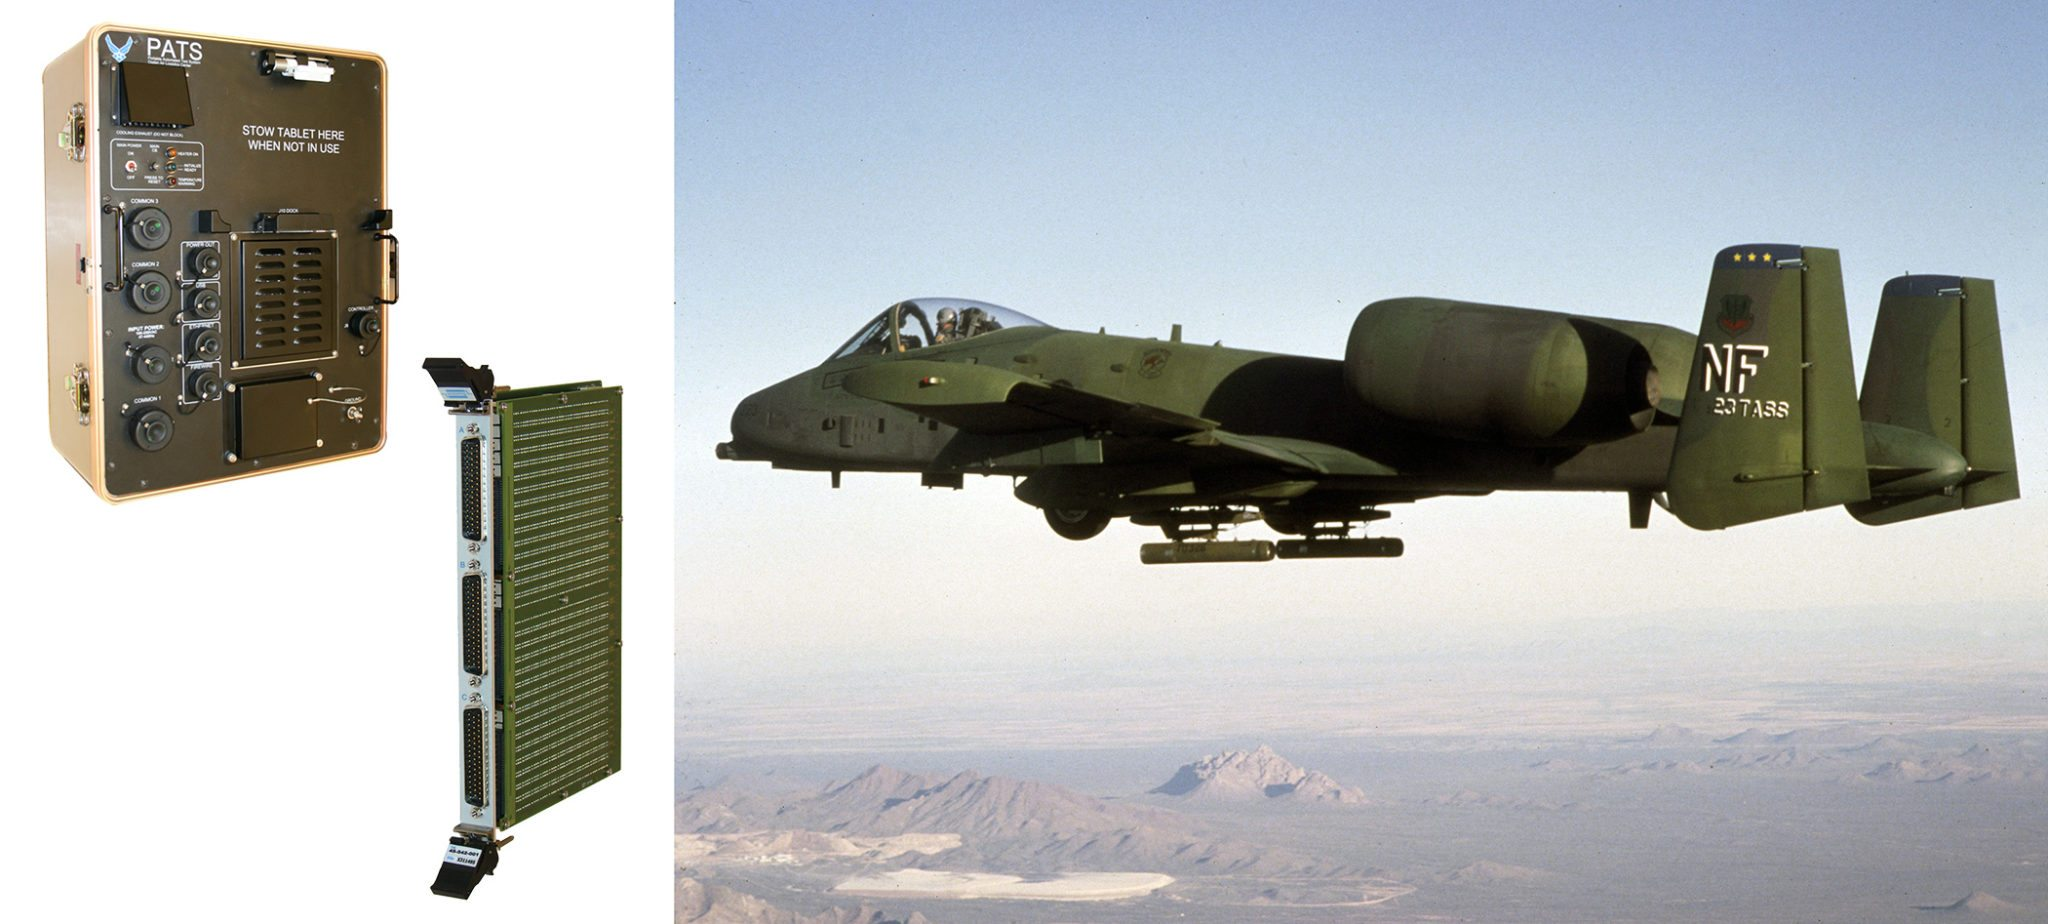 Pickering Interfaces PXI Switching Module Selected for A-10C